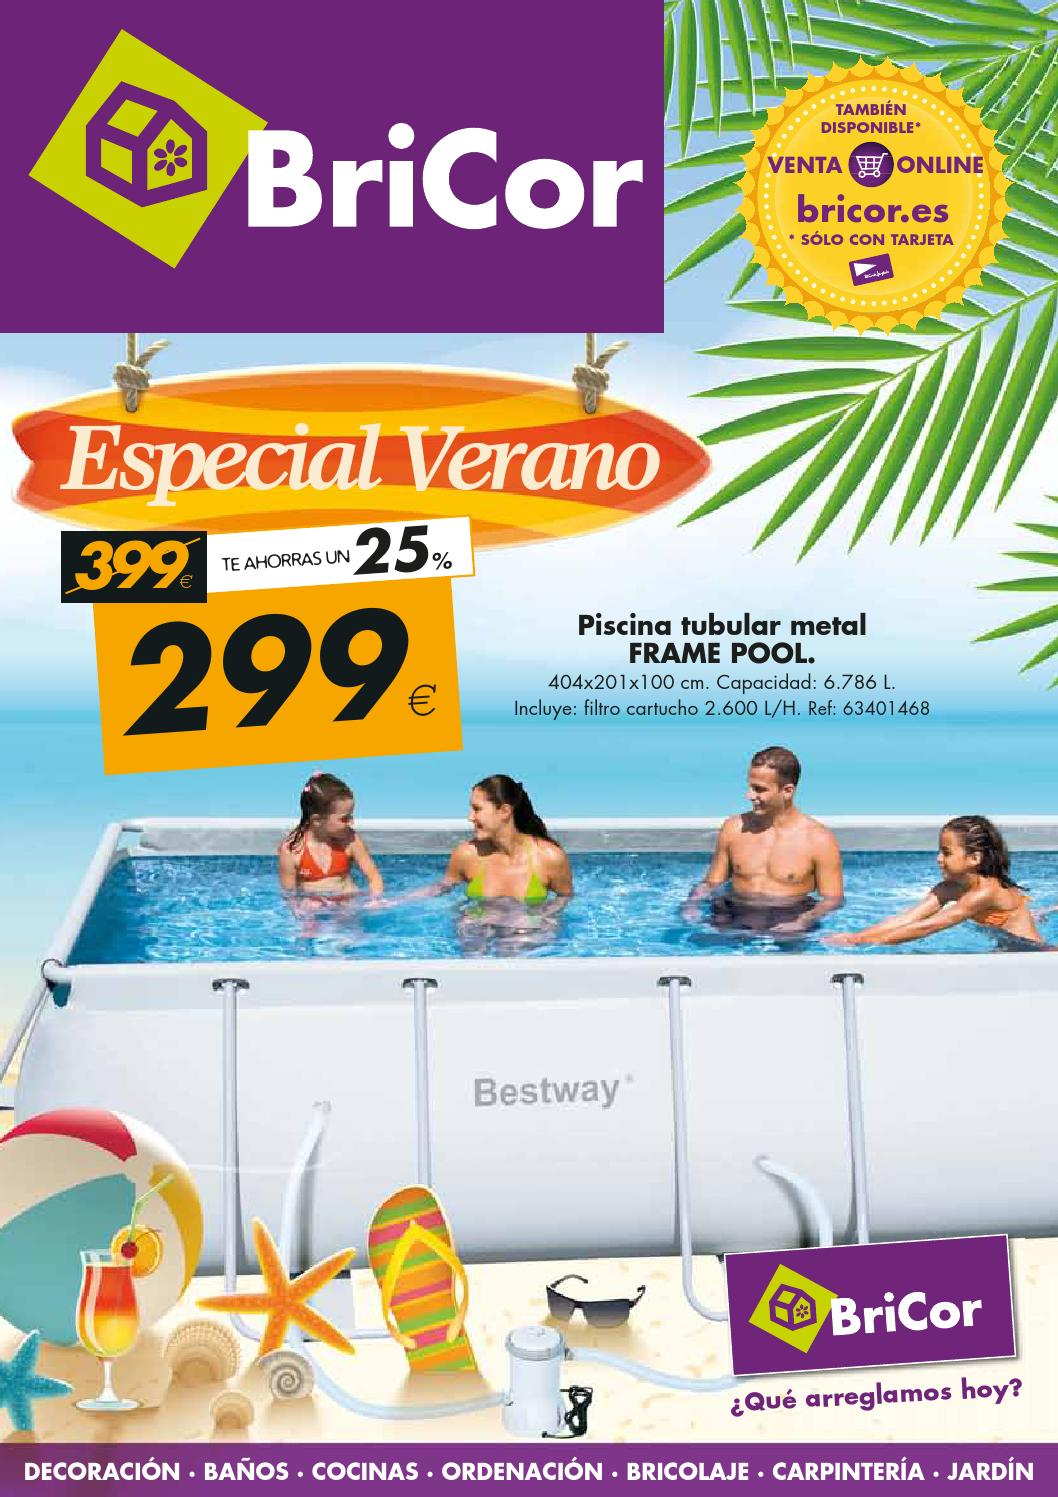 Verano bricor by losdescuentos issuu for Piscinas desmontables bricor